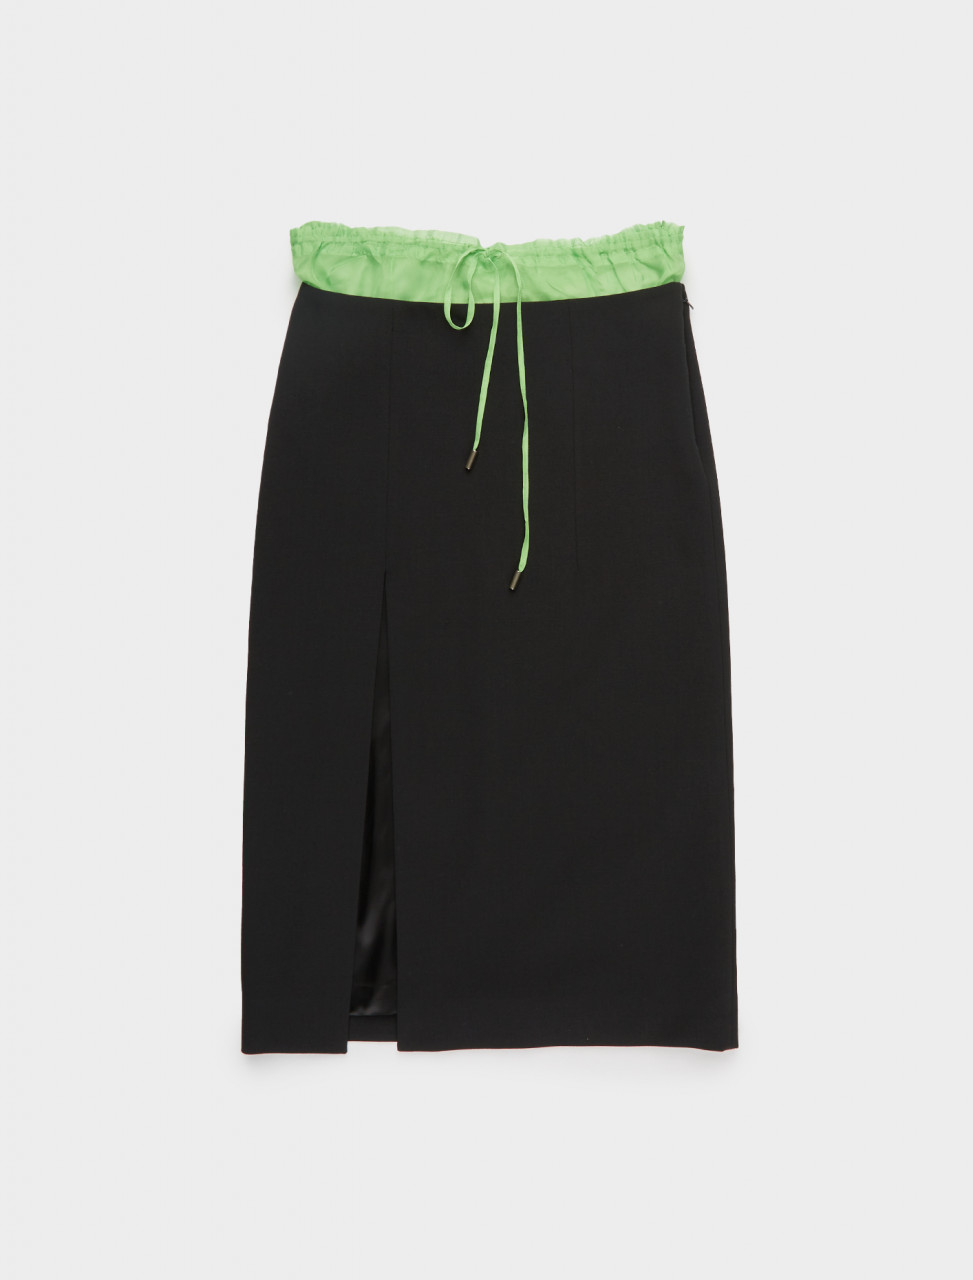 340-CAPS20SL06 SUPRIYA LELE BOXER SKIRT BLACK LIME